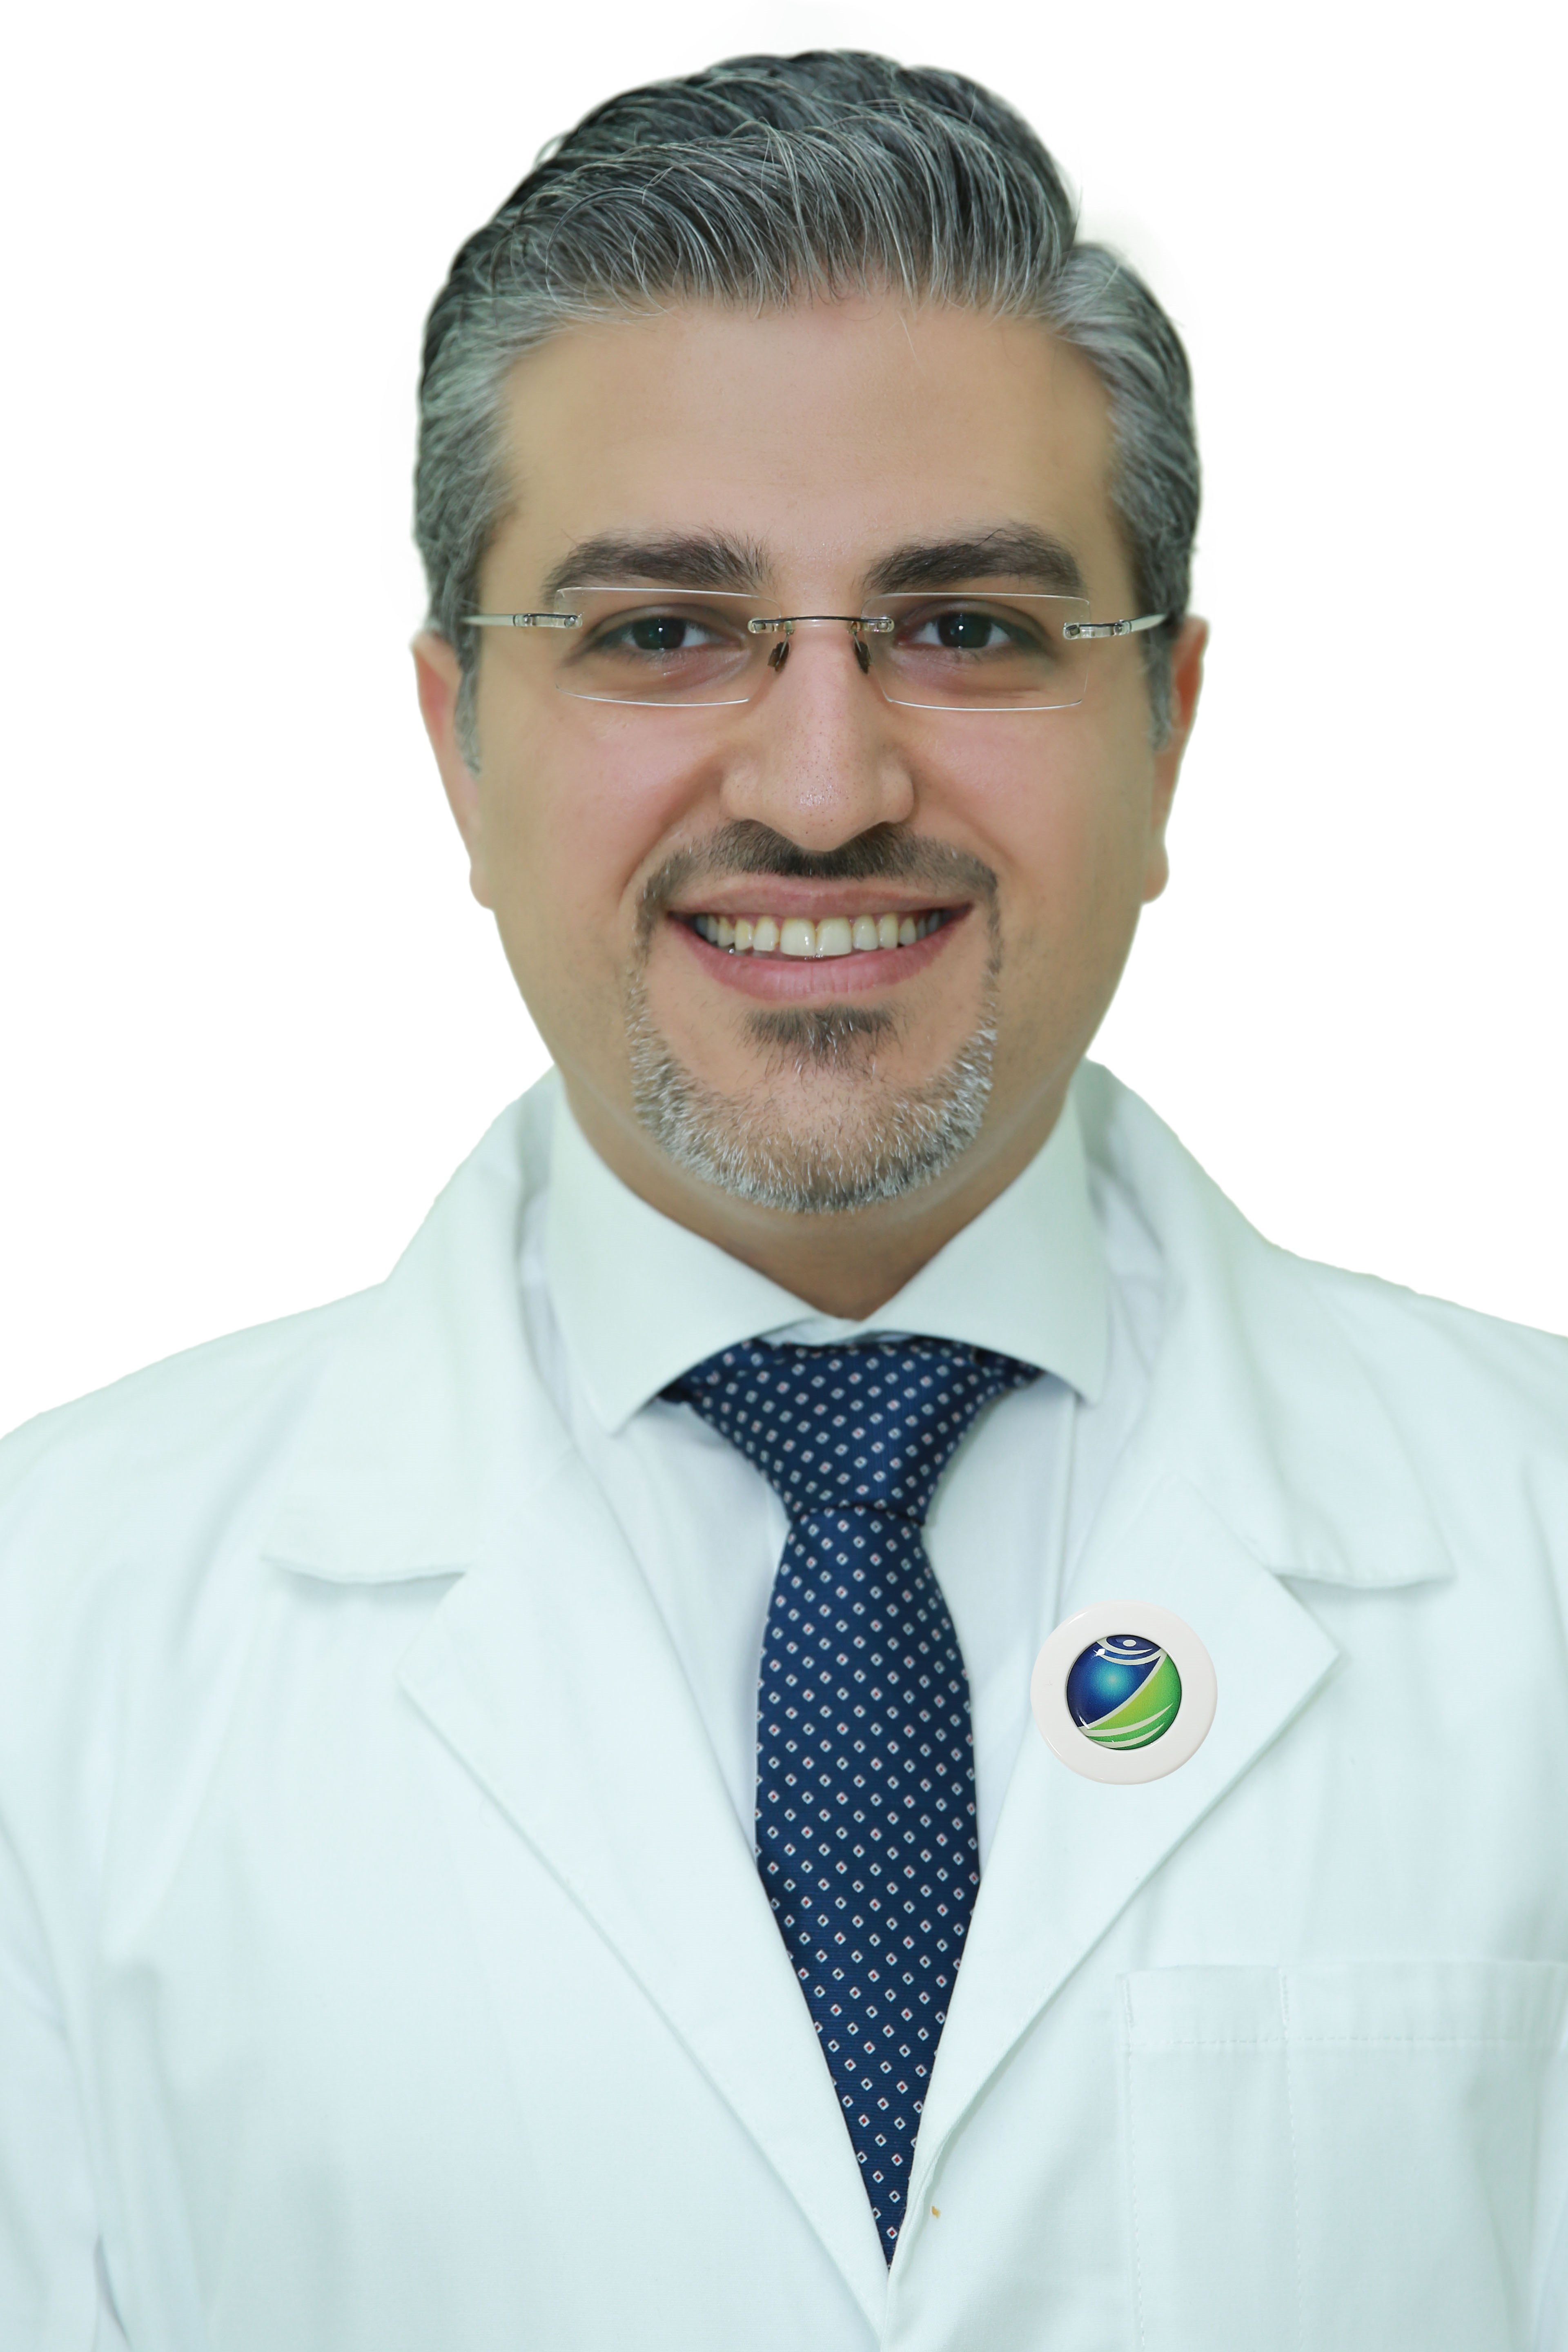 Zulekha Hospital Sharjah Introduces new Technique for Liver and Pelvic Cancer Treatment